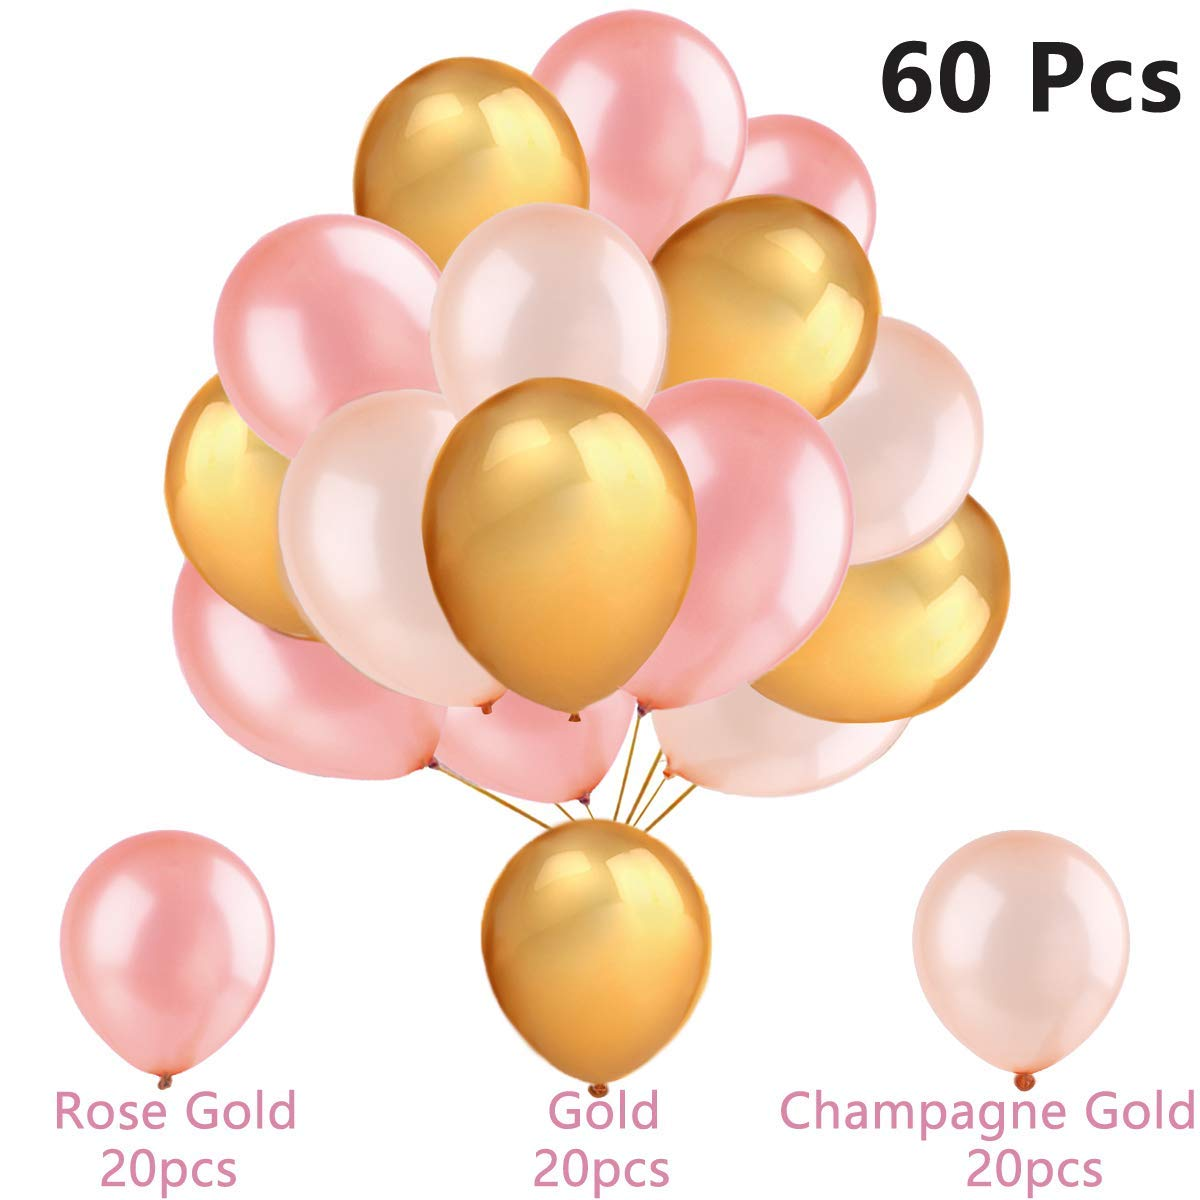 60Pcs Gold Balloons & Rose Gold Balloons & Champagne Gold Balloons, 12 Inch, Decoration Supplies for Wedding, Graduation, Birthday Party, Hawaii